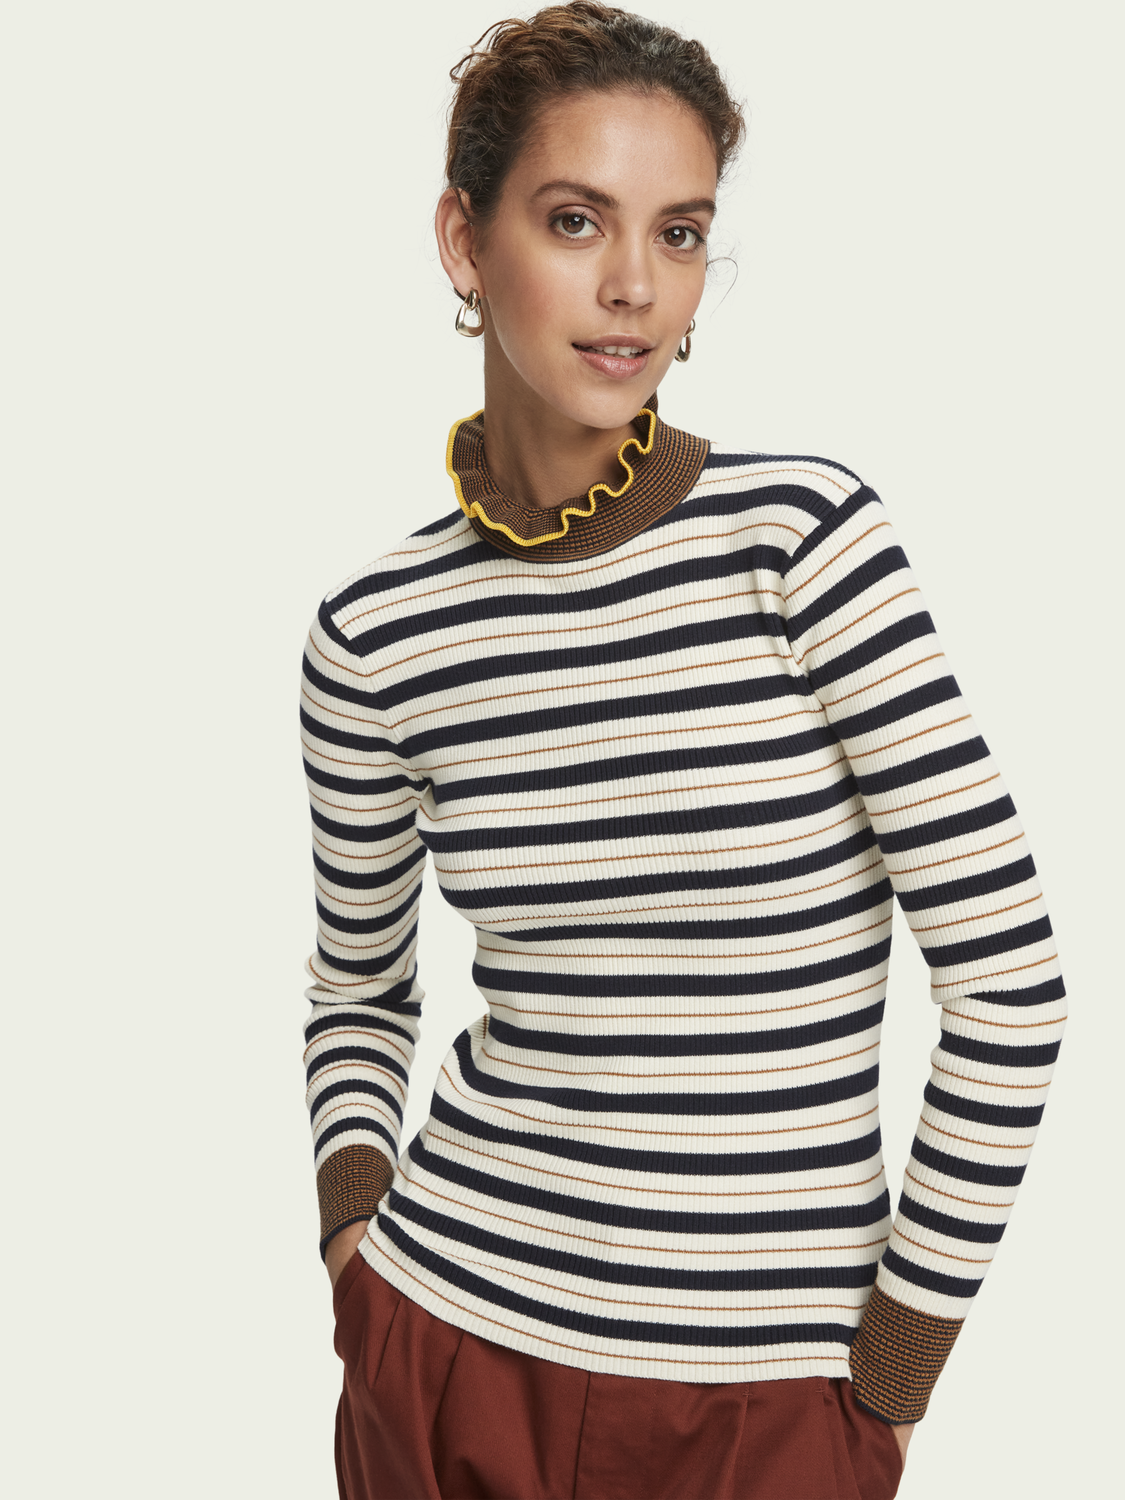 Women 100% cotton striped rib knit turtleneck